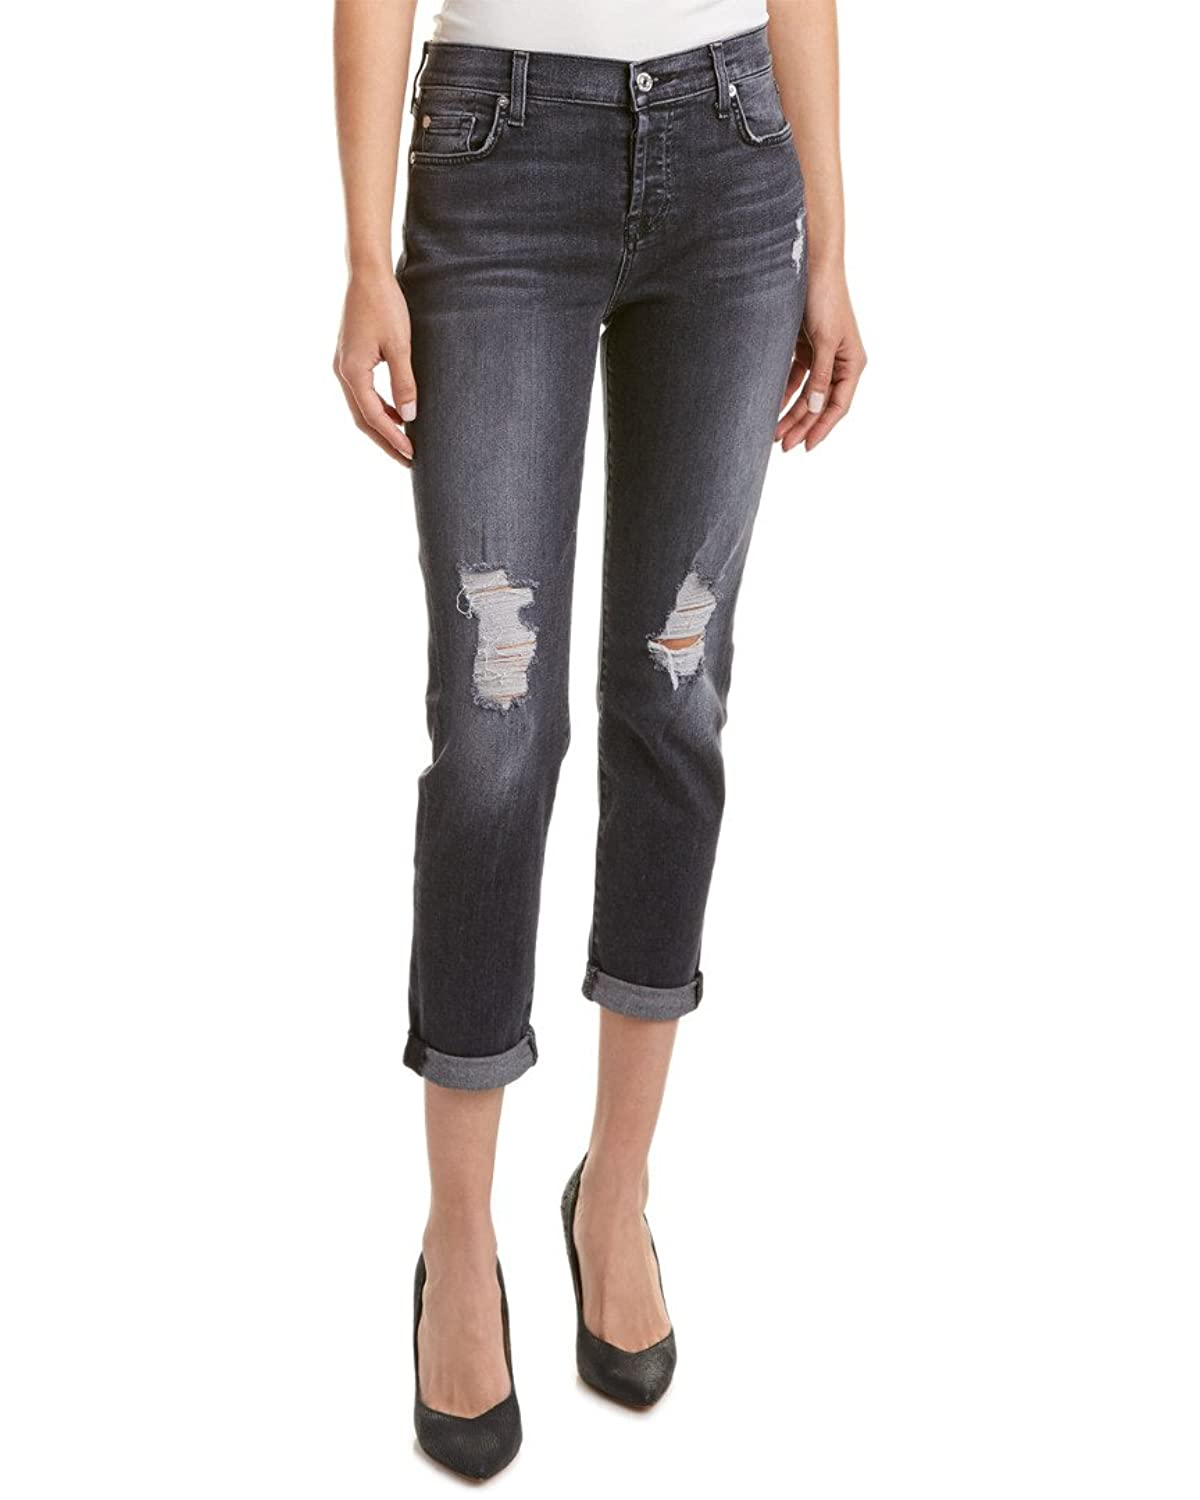 7 For All Mankind Women's Josefina w/ Destroy & Shadow Pockets - Clean Back Pocket in